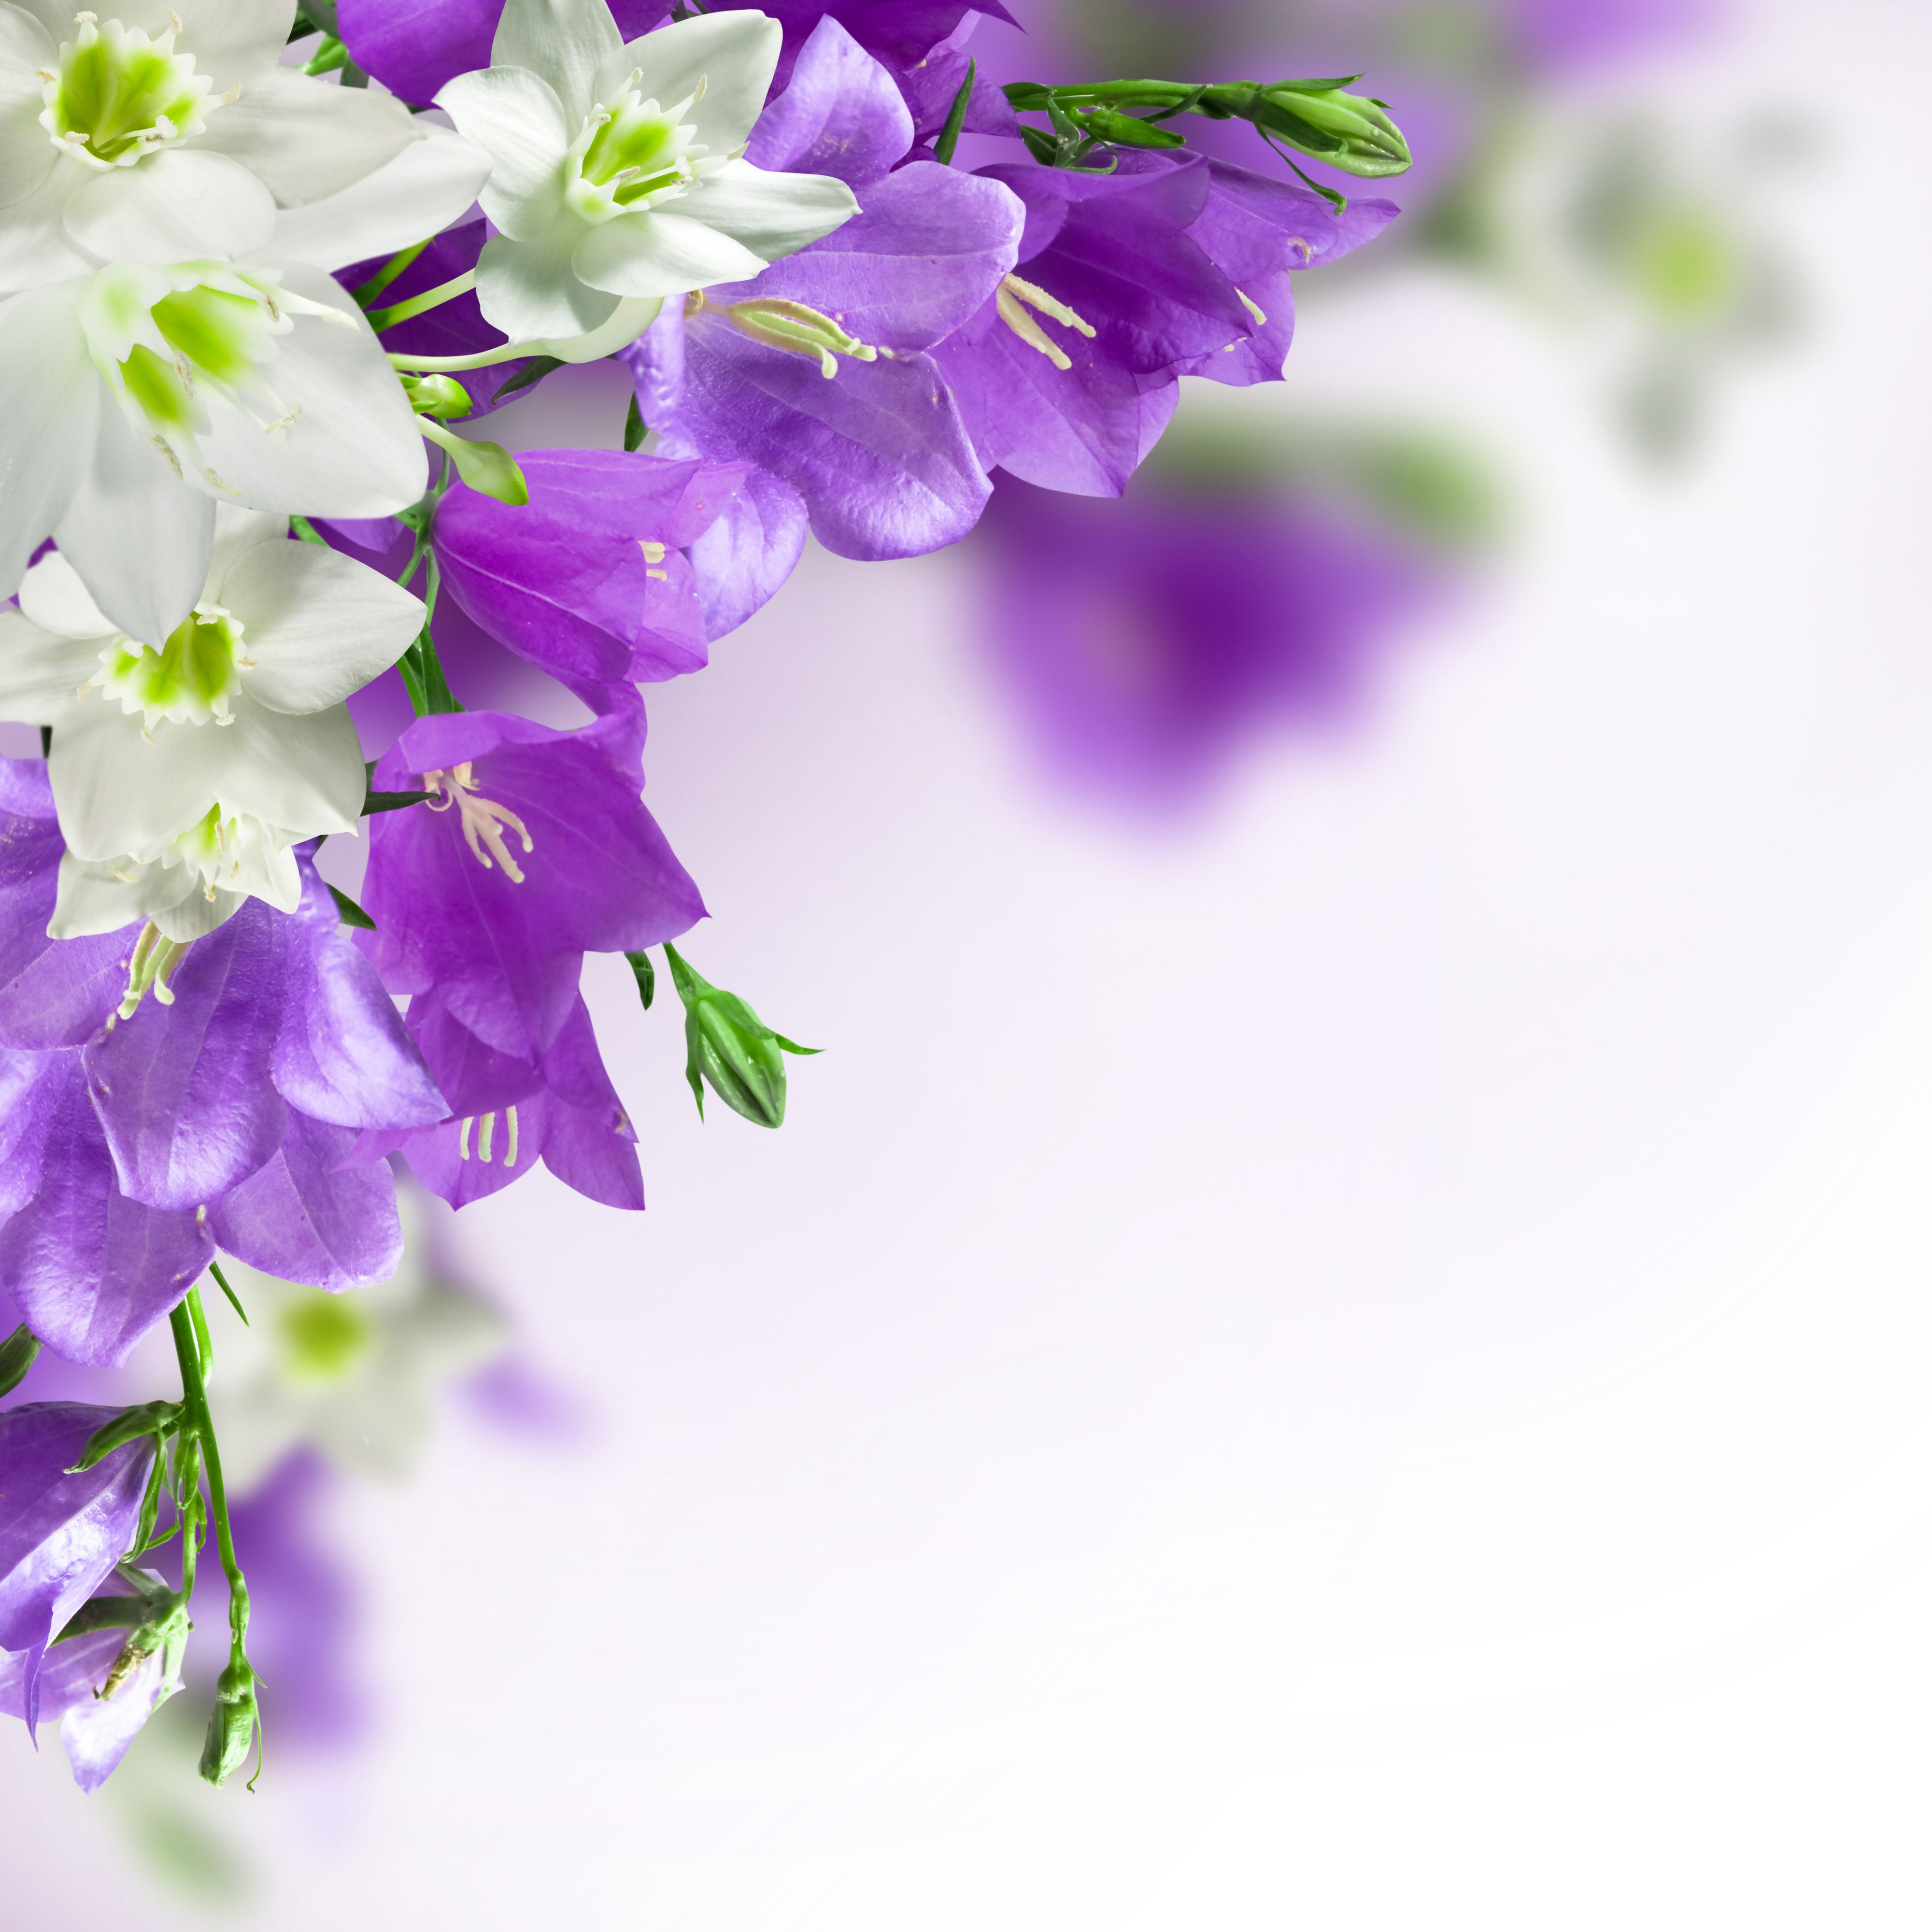 Spring Background With White And Purple Flowers